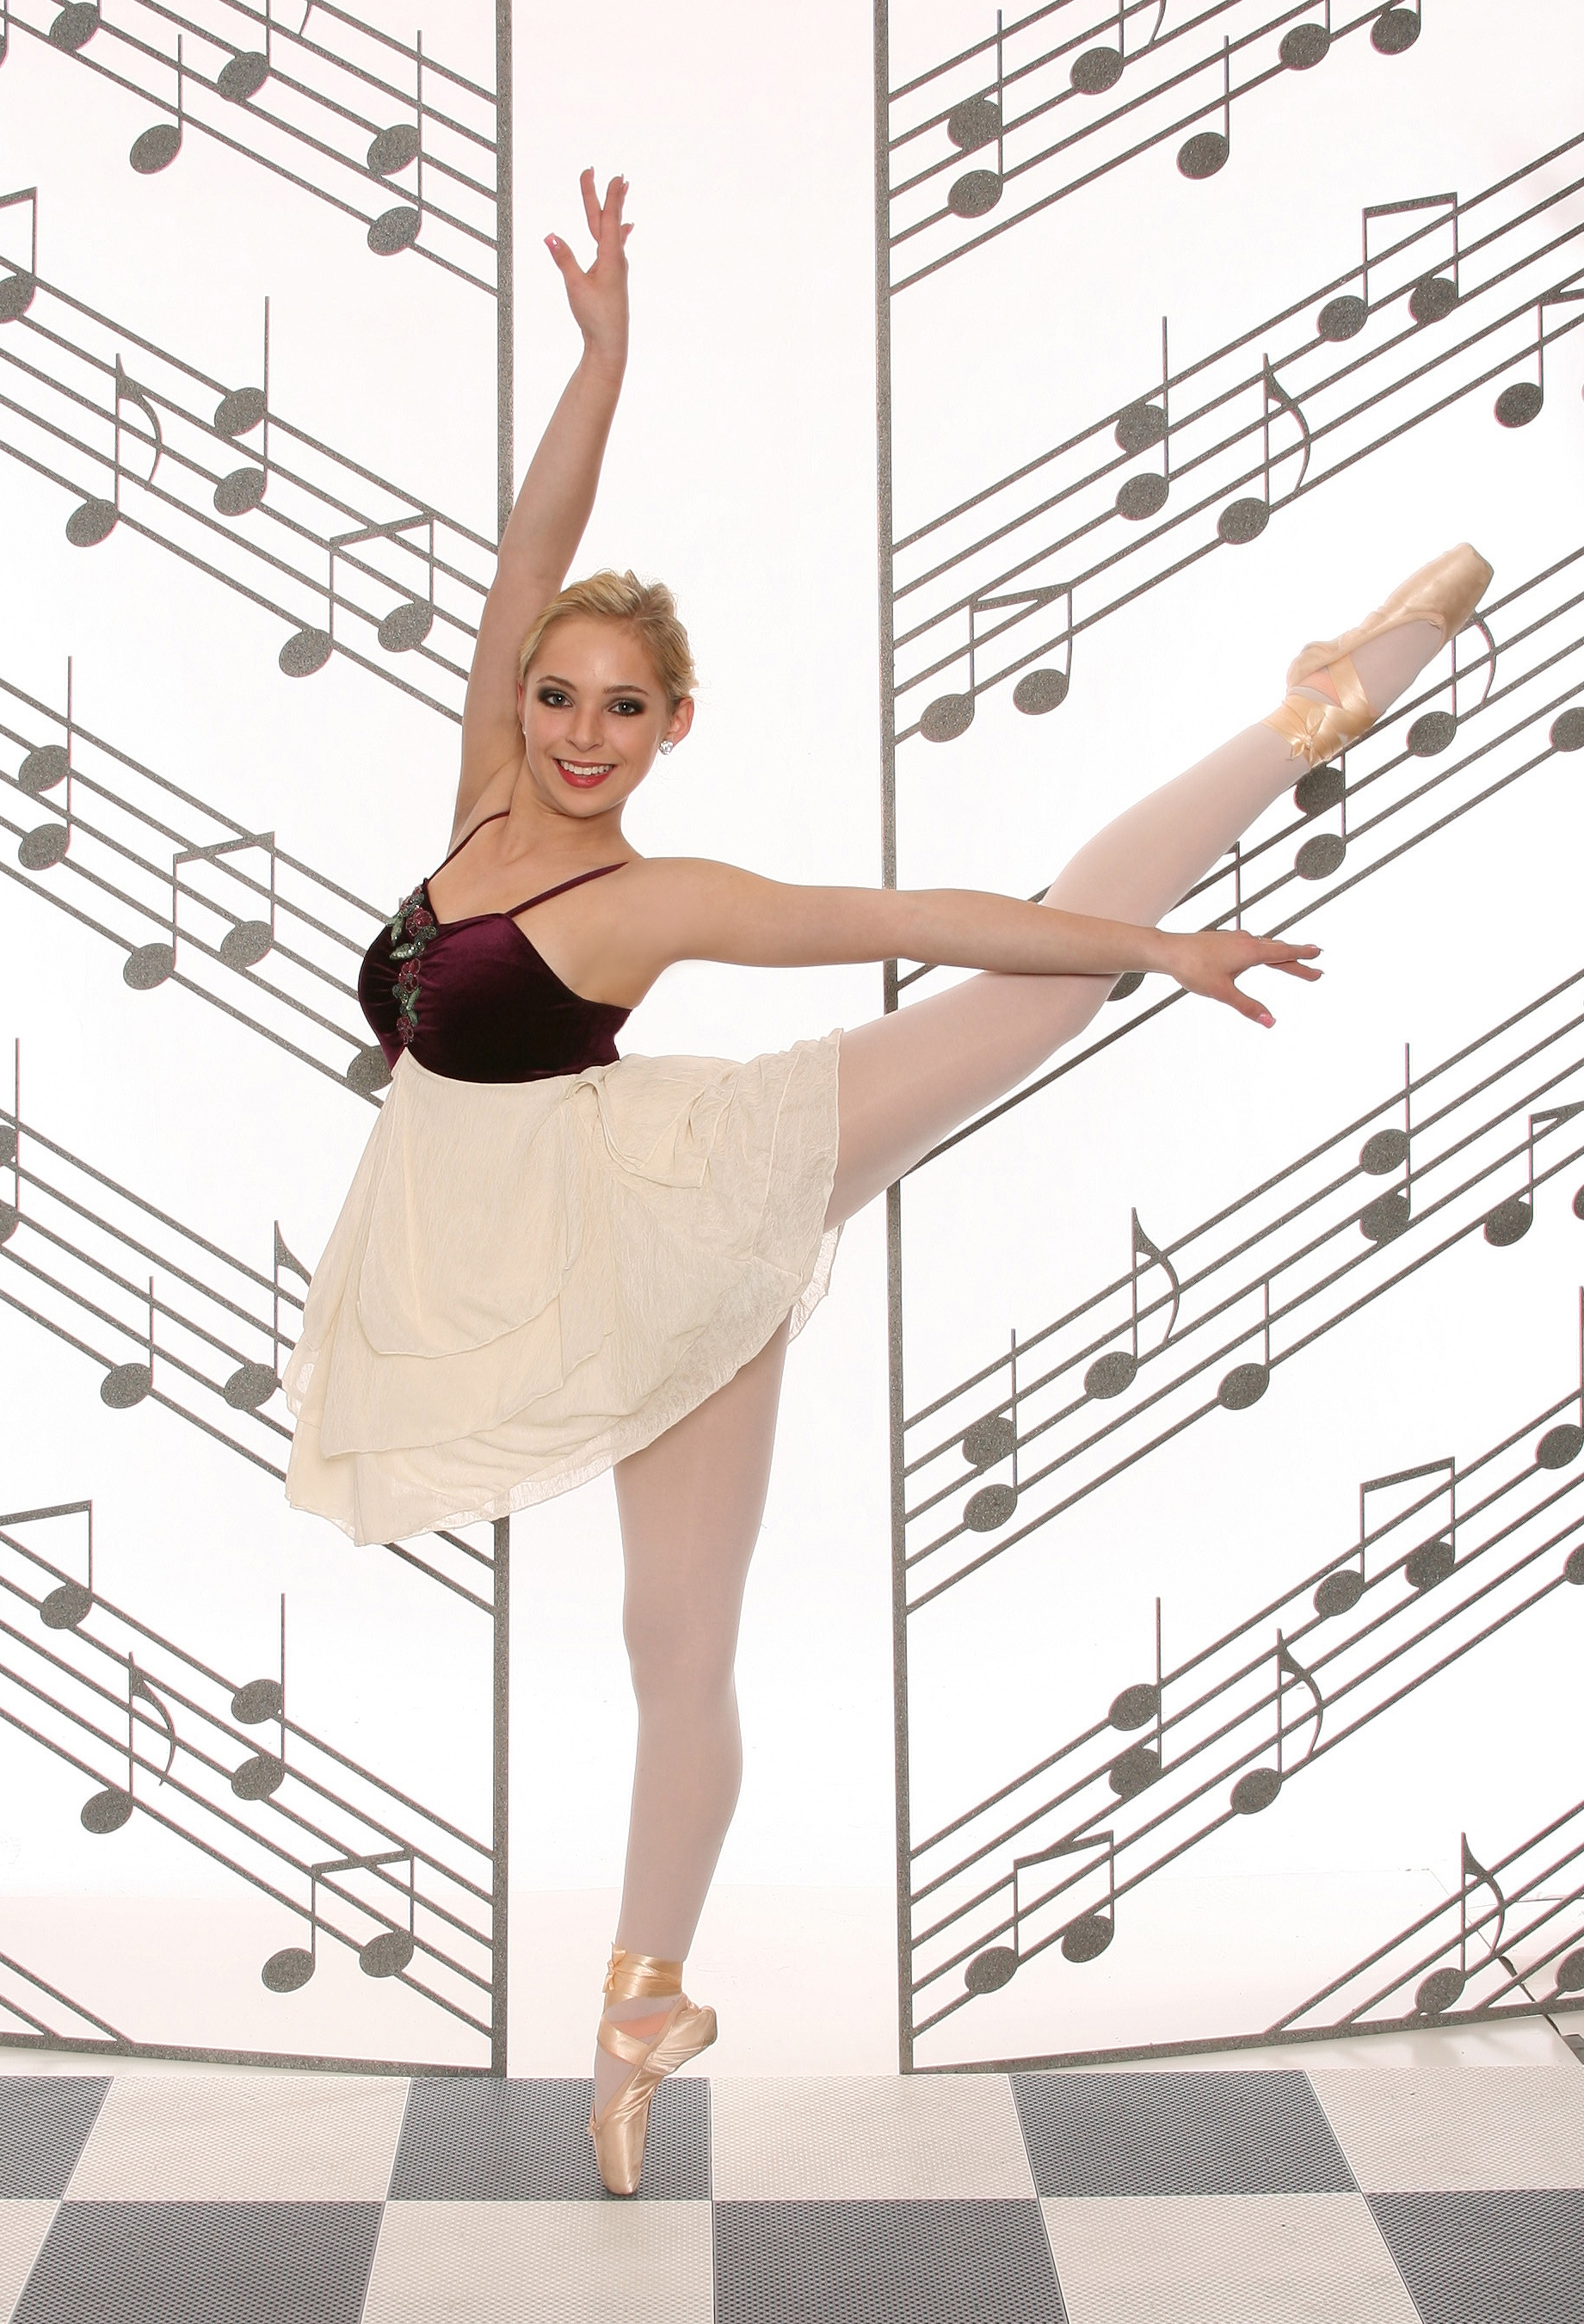 Wanna make your pointe memorable? - To learn more click here